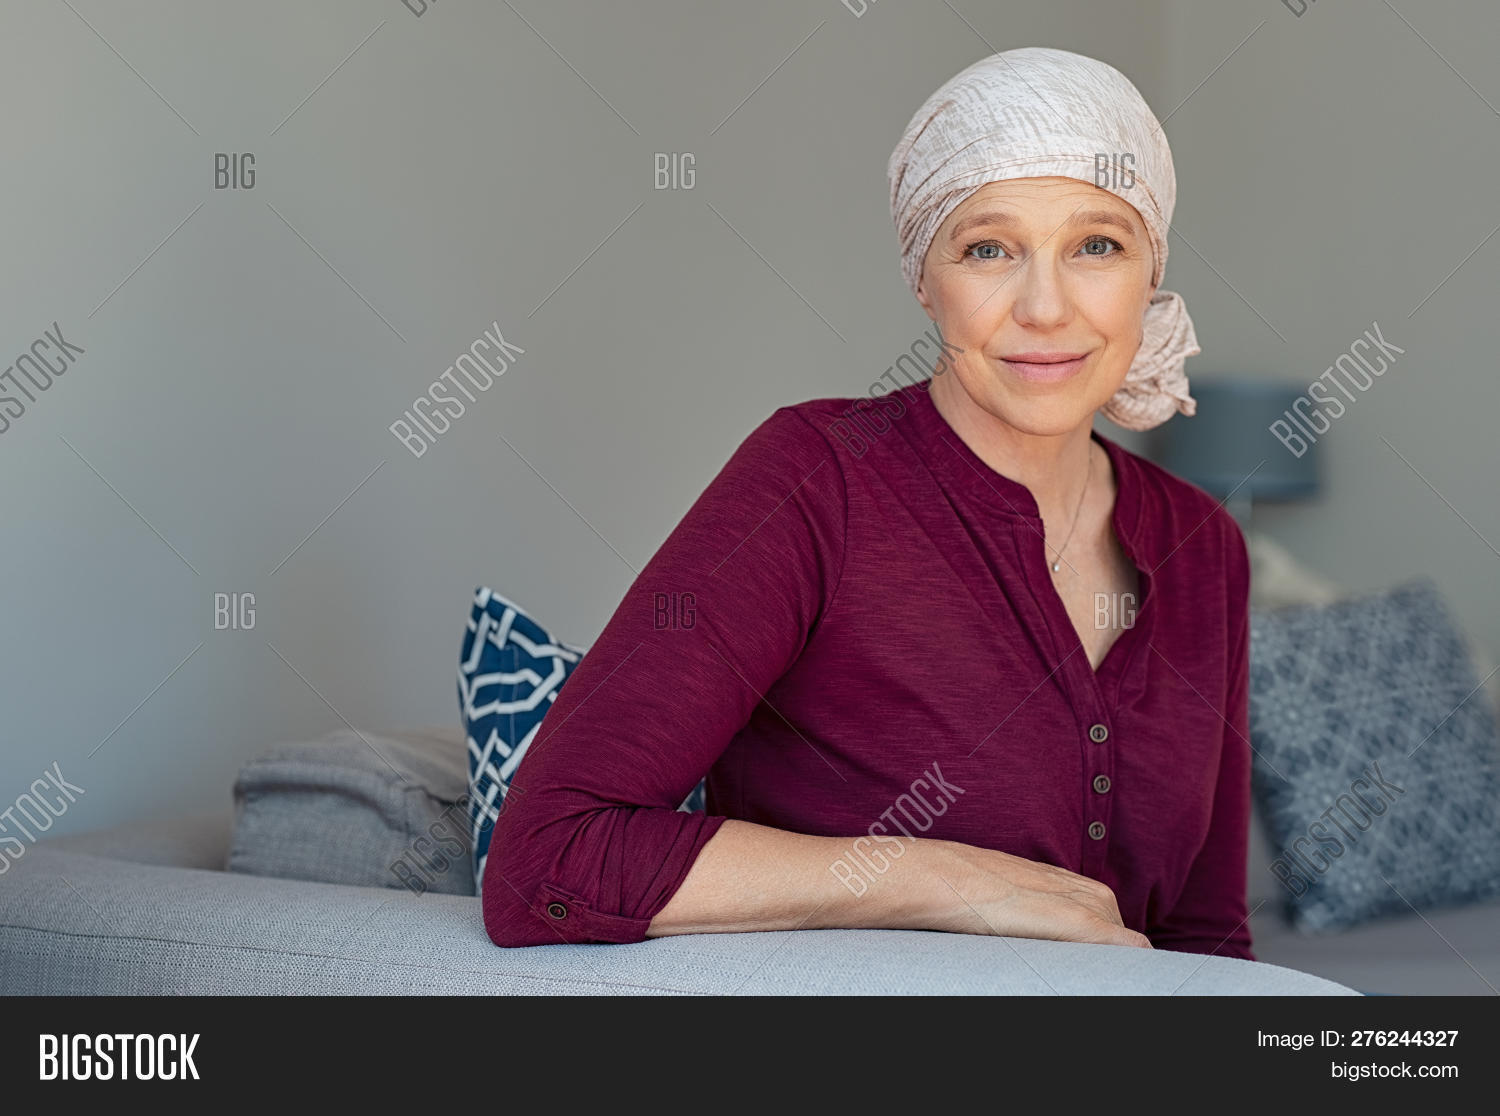 50s,60s,battle,cancer,cancer cells,cancer patient,cancer survivor,care,chemo,chemotherapy,chemotherapy patient,clinic,copy space,determination,disease,hair loss,happy,head scarf,headscarf,health,health care,healthcare,home,ill,illness,looking,mature,matured,medical,medicine,mid adult woman,middle aged woman,old woman,oncology,pain,patient,people,recovery,scarf,senior,senior woman,serene,sickness,smile,suffer,survivor,therapy,treatment,tumor